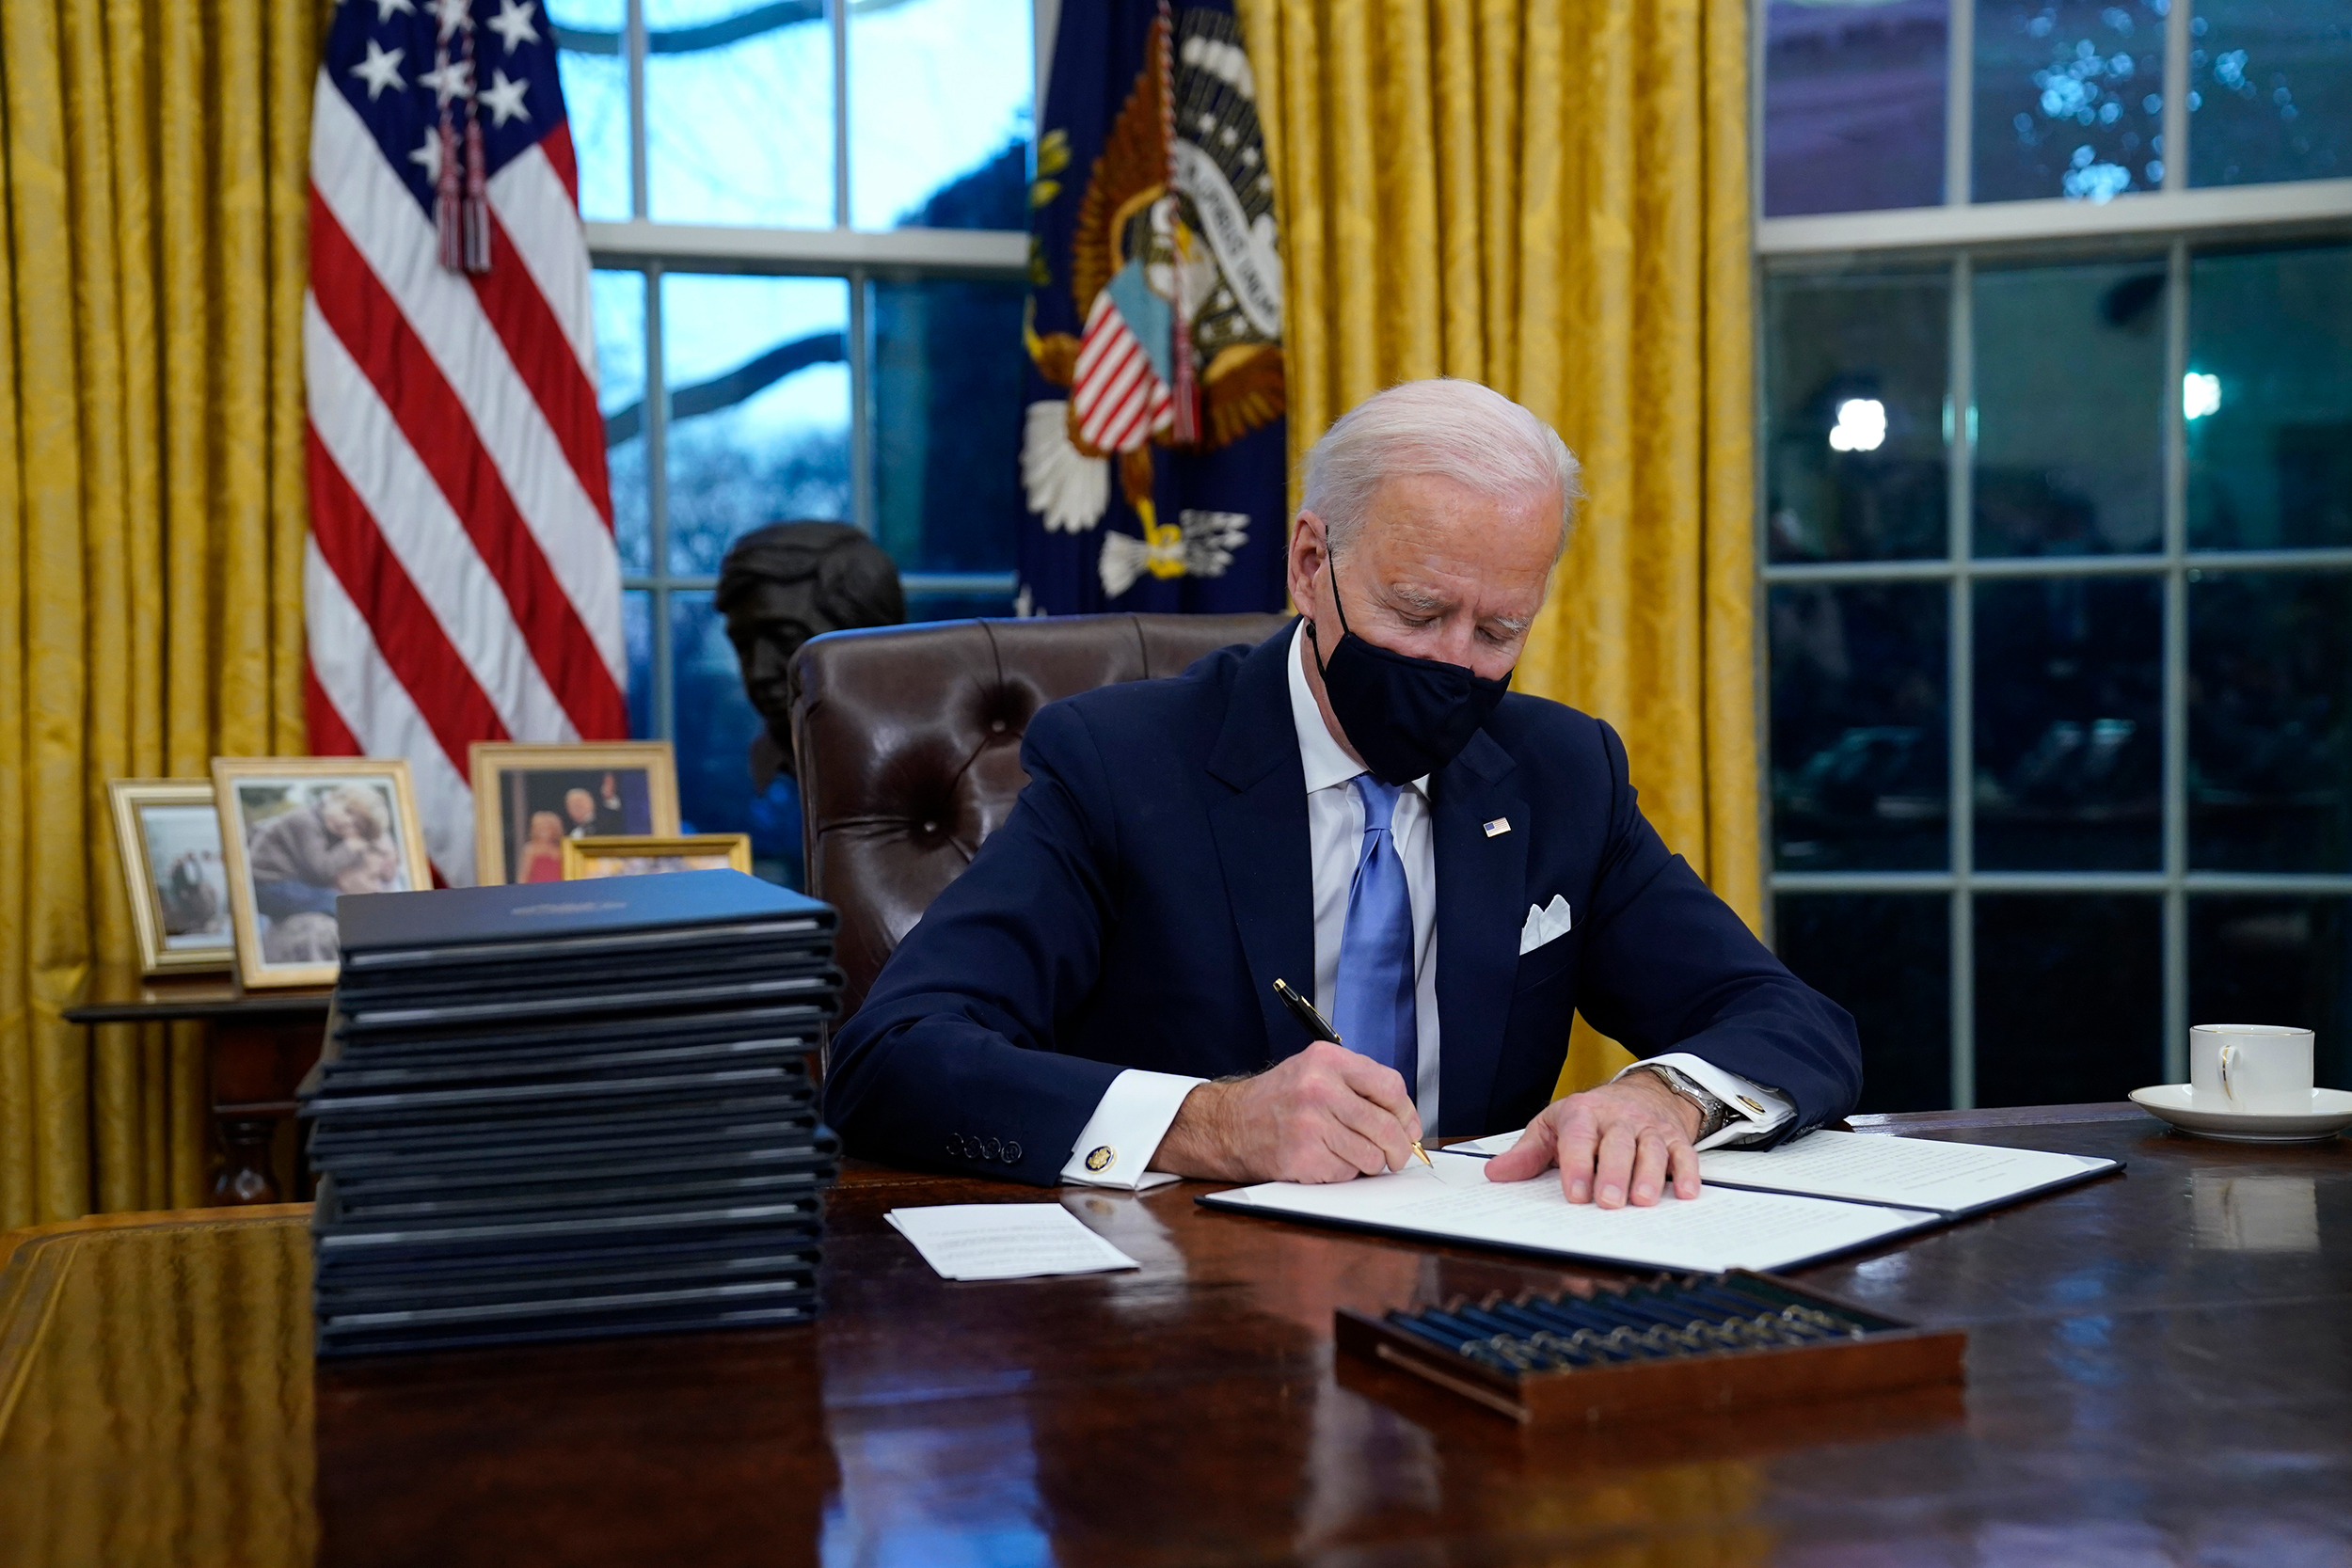 Biden says Trump left him a 'very generous letter' before departing White House